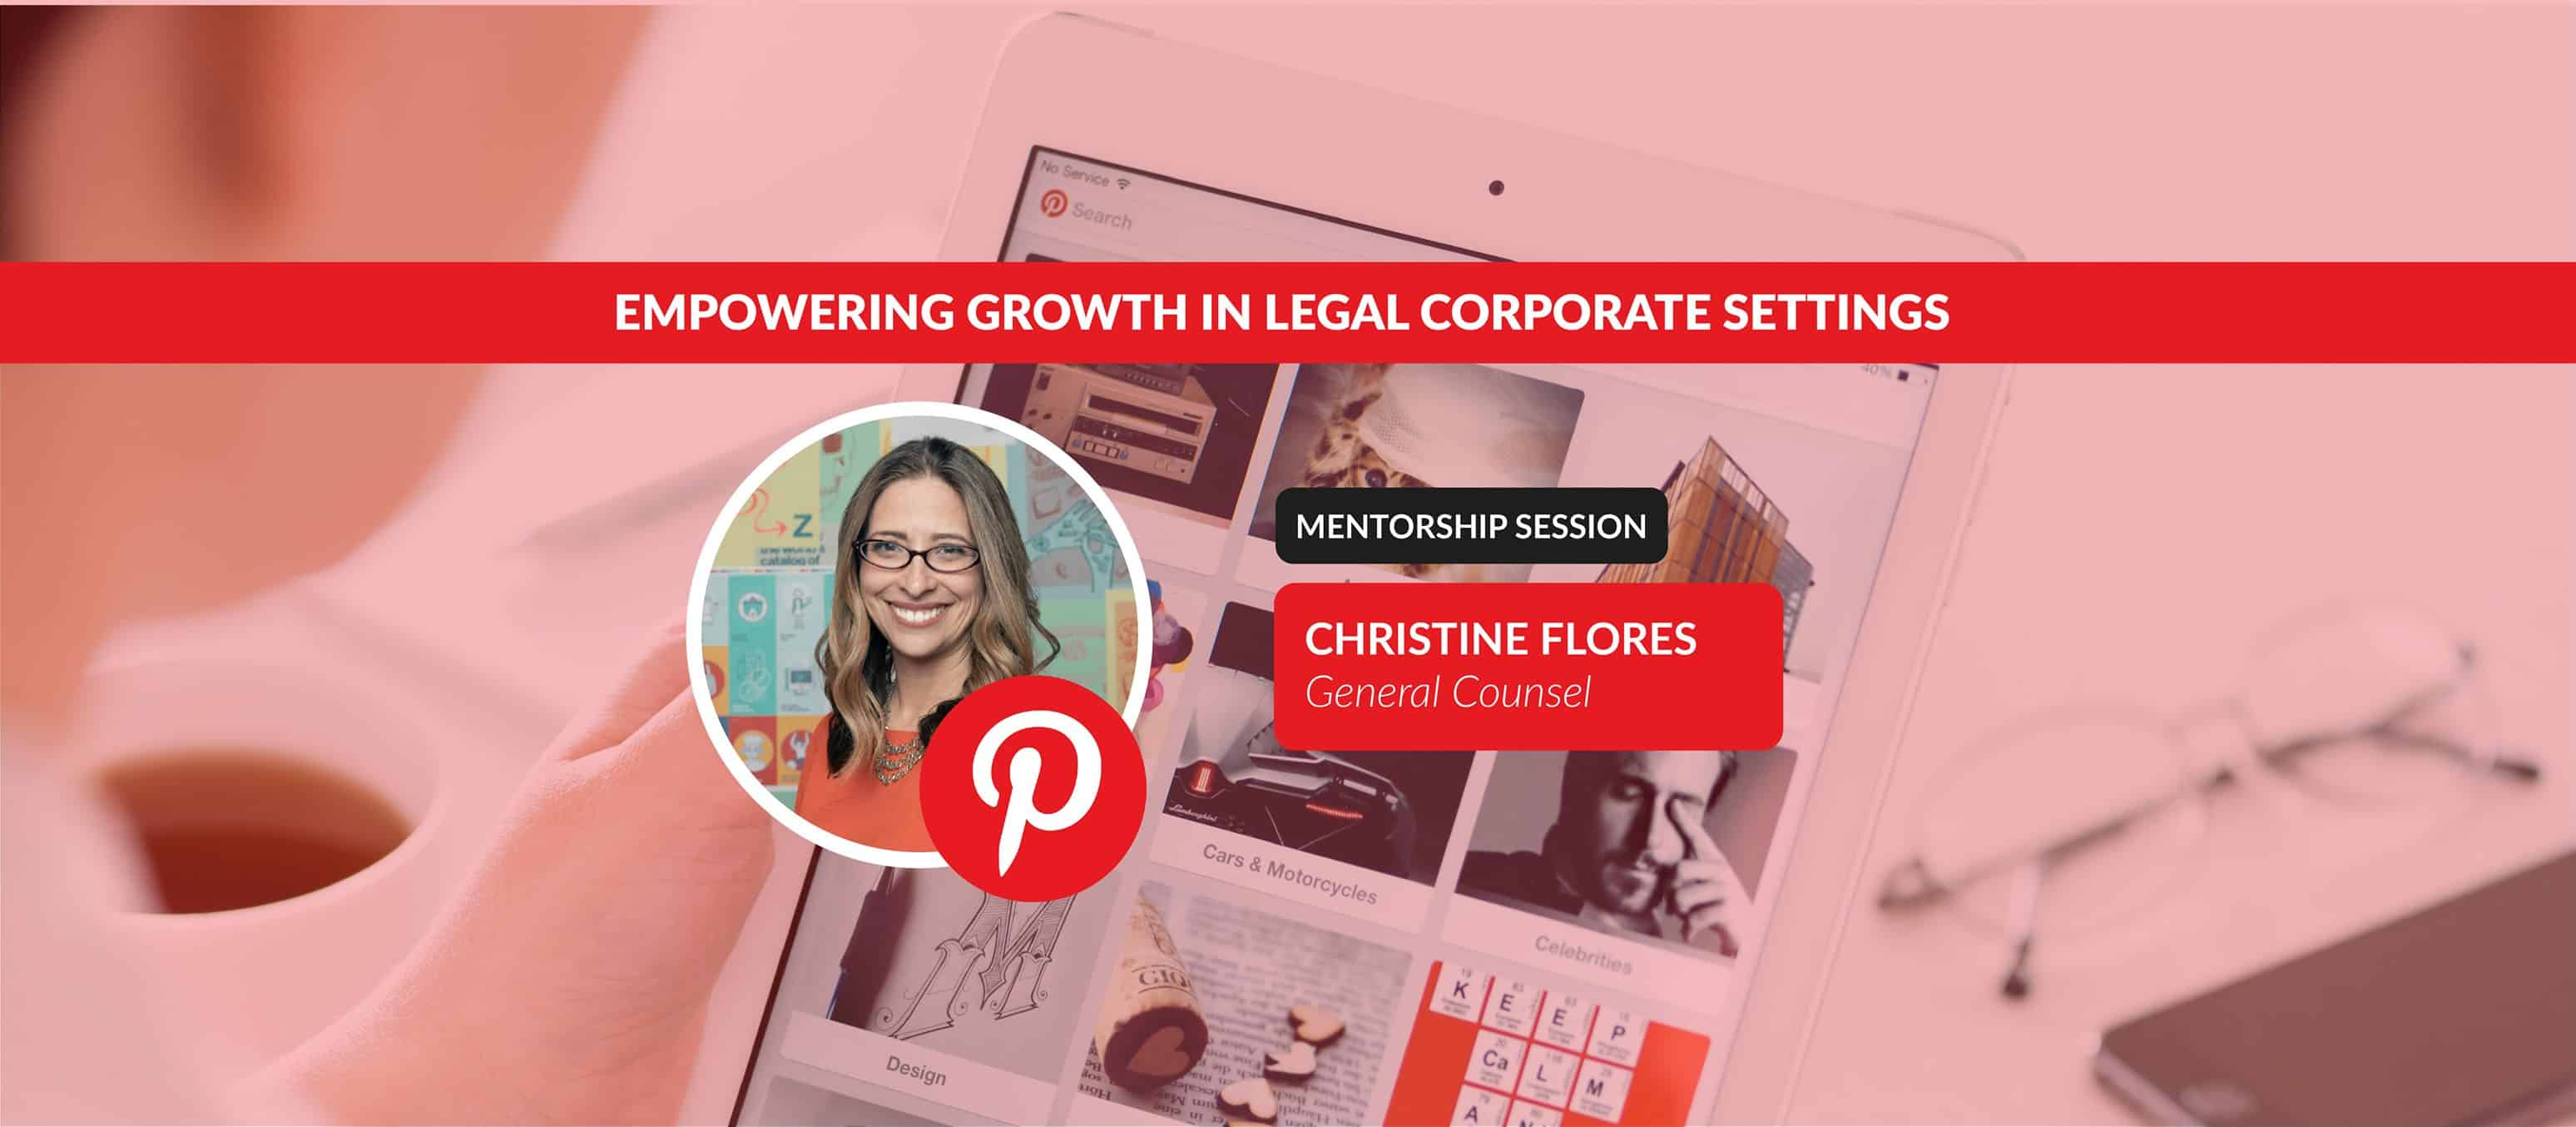 Empowering Growth in Legal Corporate Settings with Pinterest